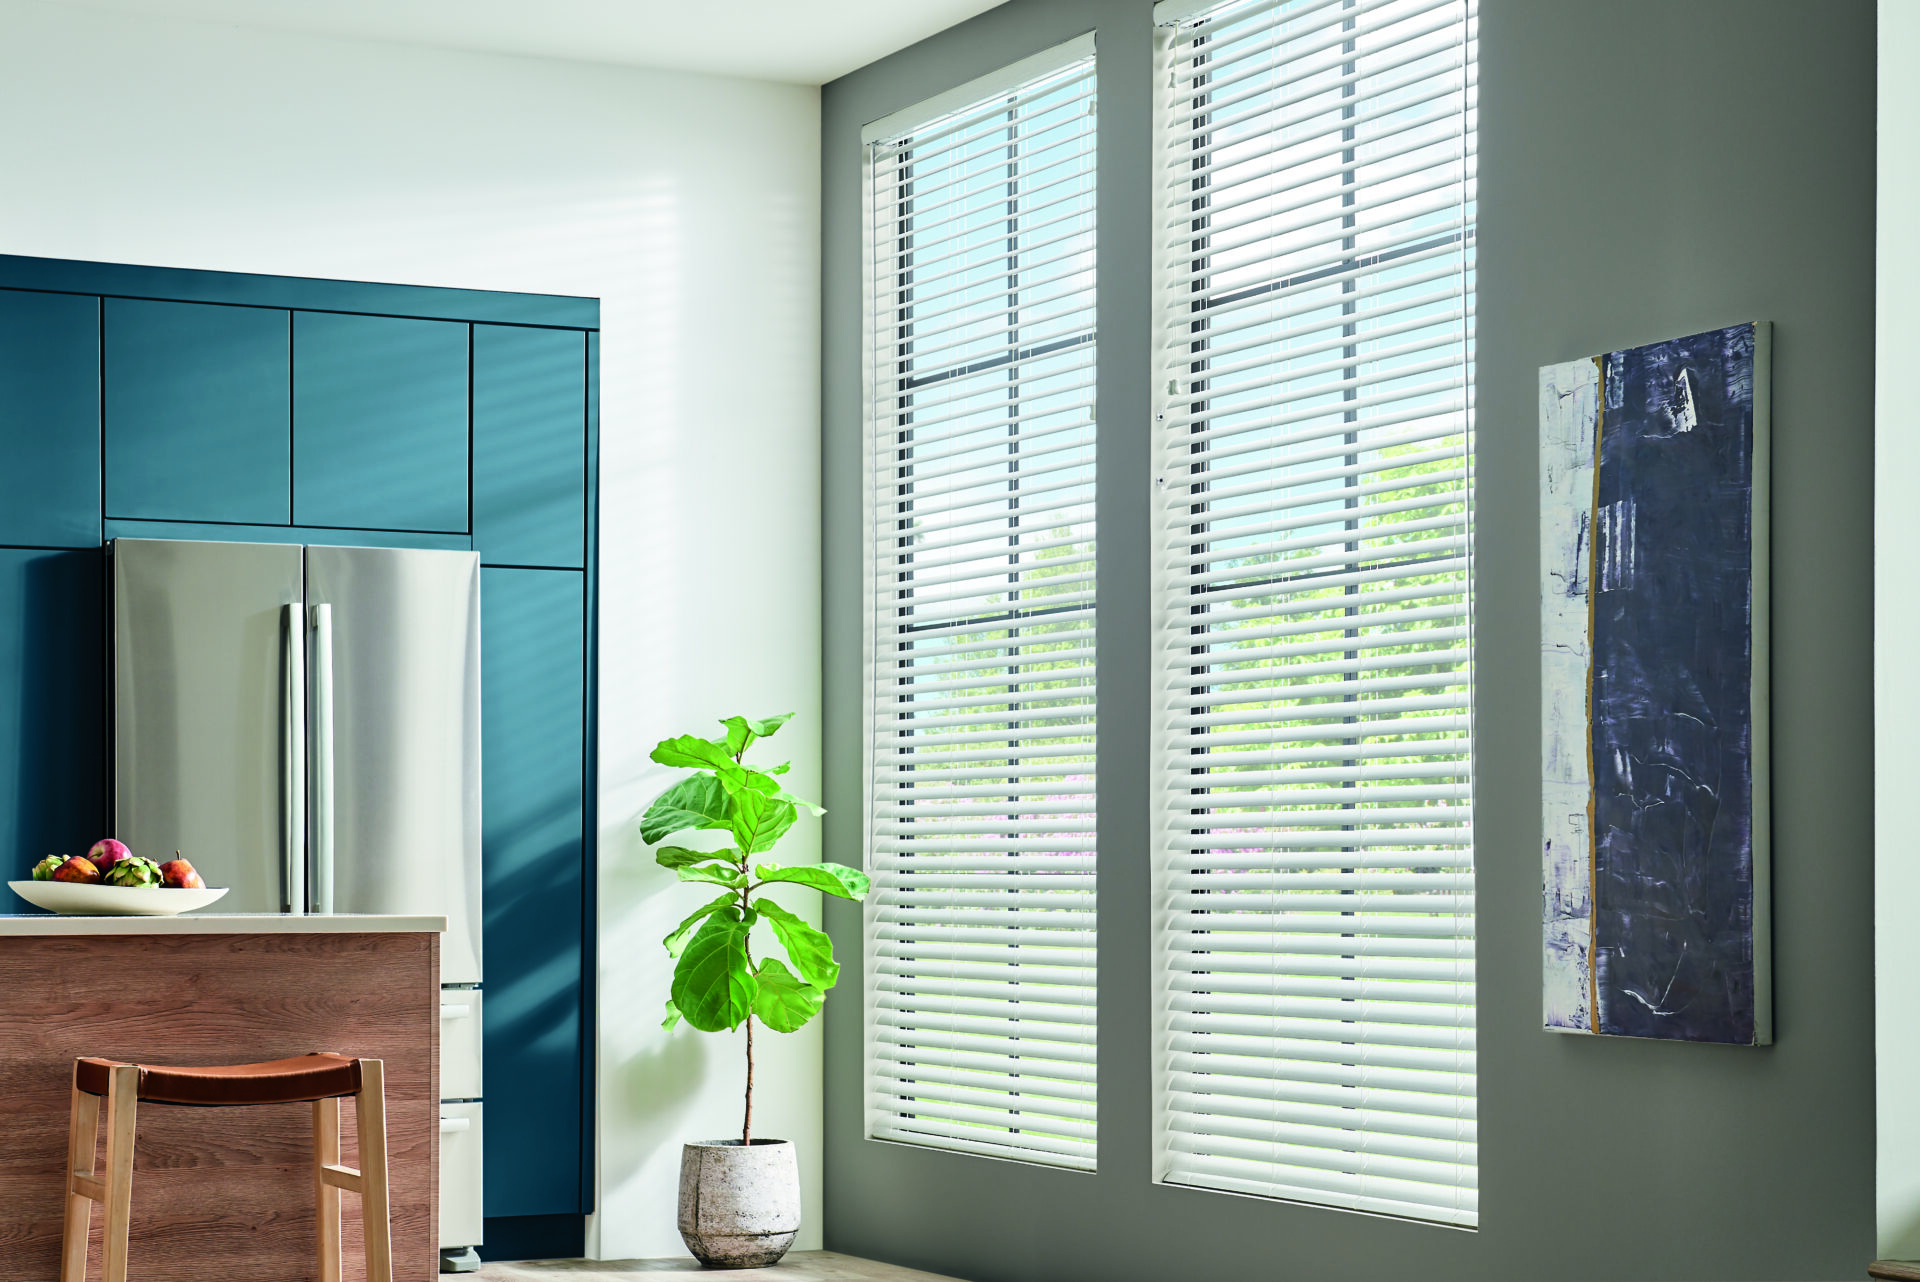 Mini Blinds that can also be custom blinds for the perfect custom window treatment